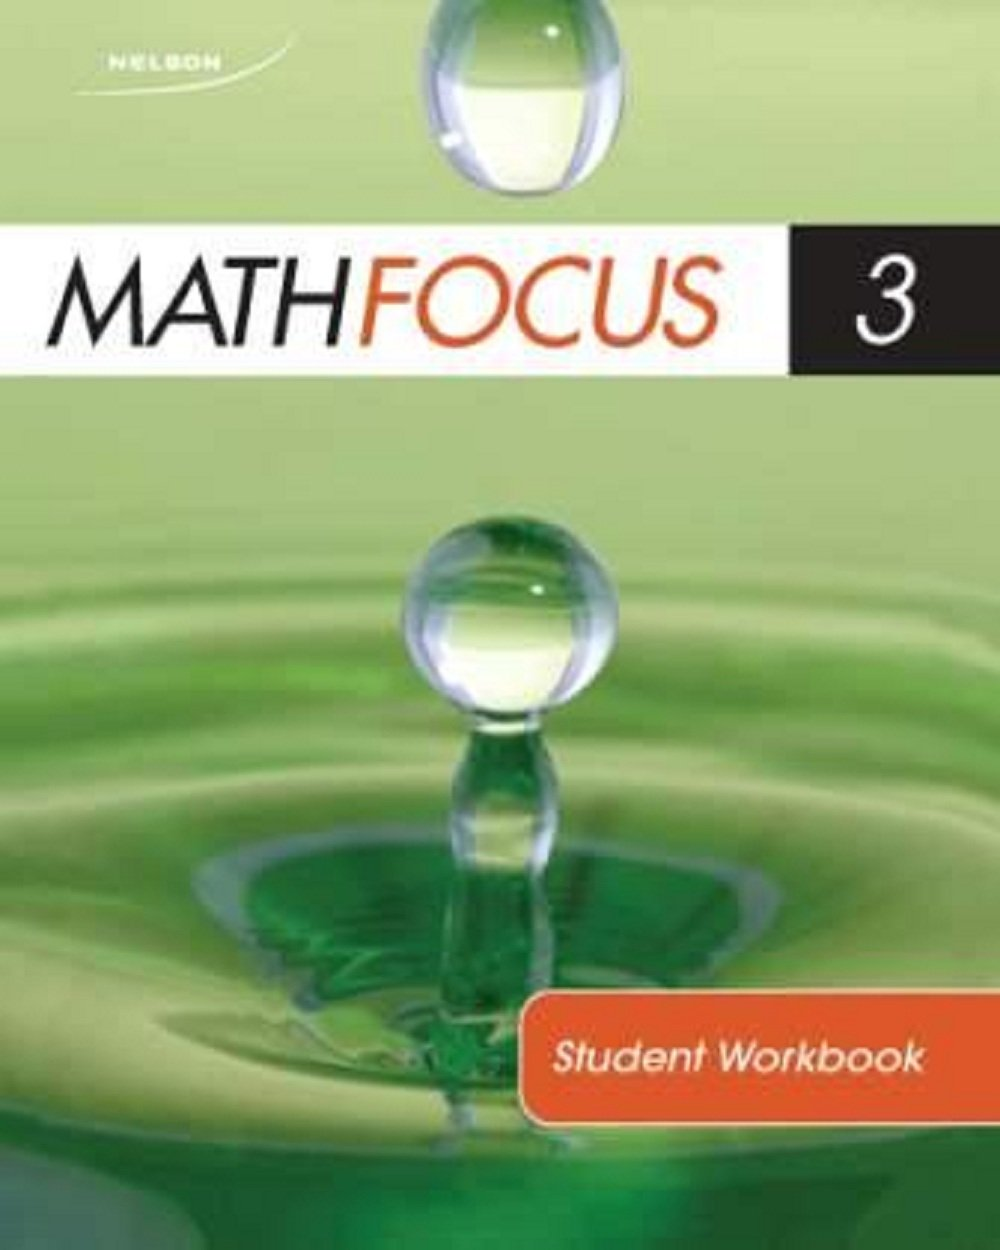 nelson math workbook answers 3